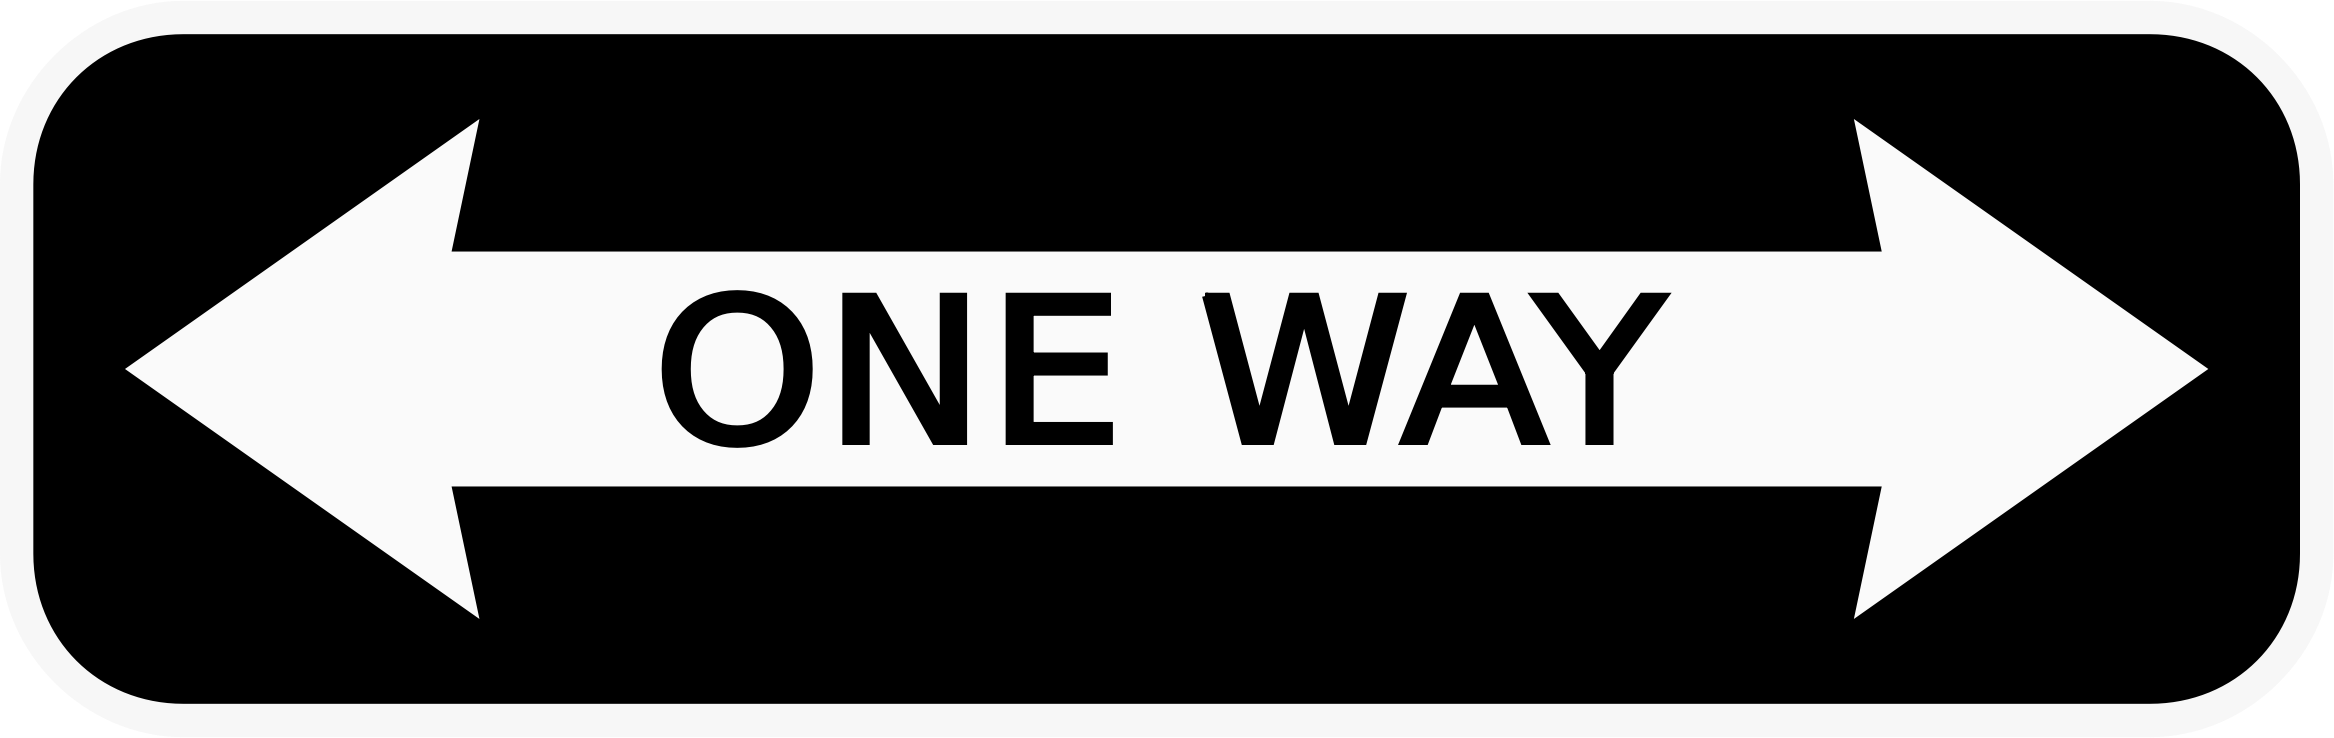 One Way Sign pointing two ways vector clipart image - Free stock photo -  Public Domain photo - CC0 Images